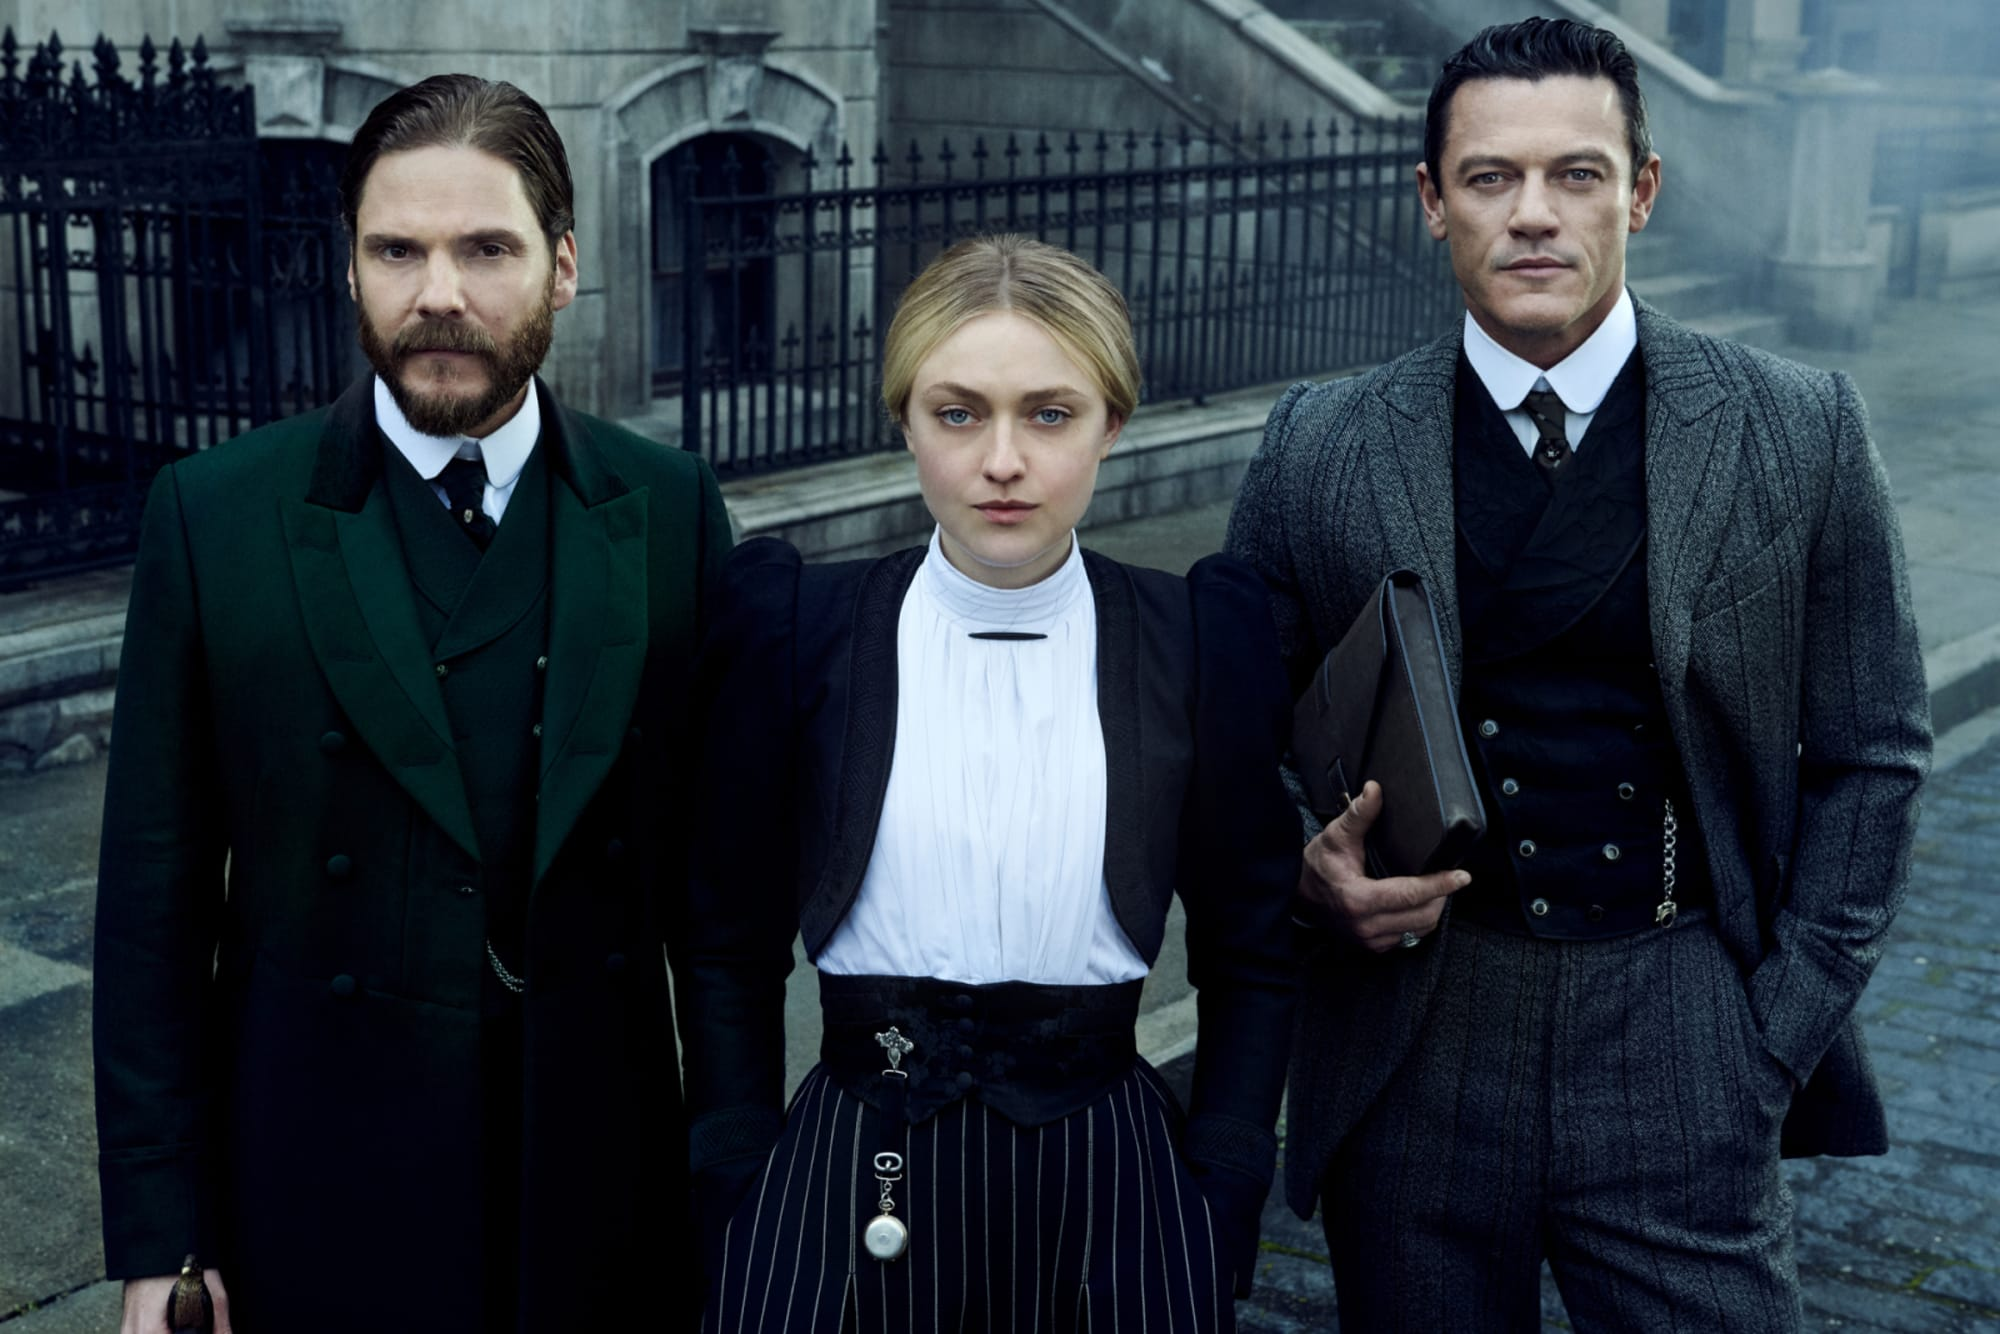 Watch The Alienist: Angel of Darkness Episodes 5 and 6 live